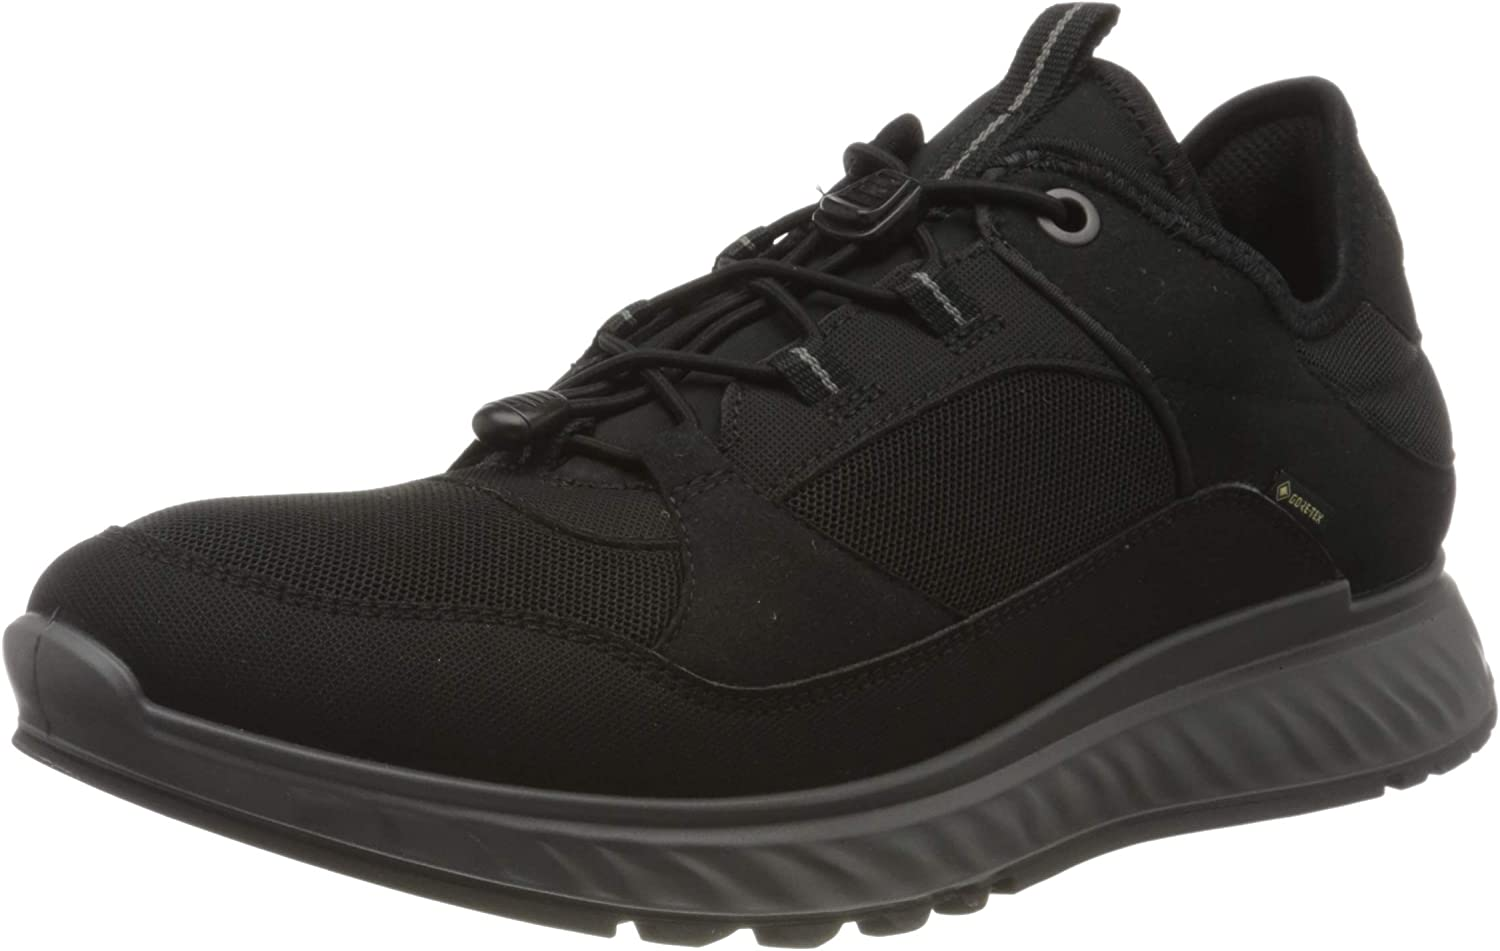 ECCO Outlet ☆ Free Shipping Men's Year-end annual account Low-Top Sneaker 7.5 UK 11.5